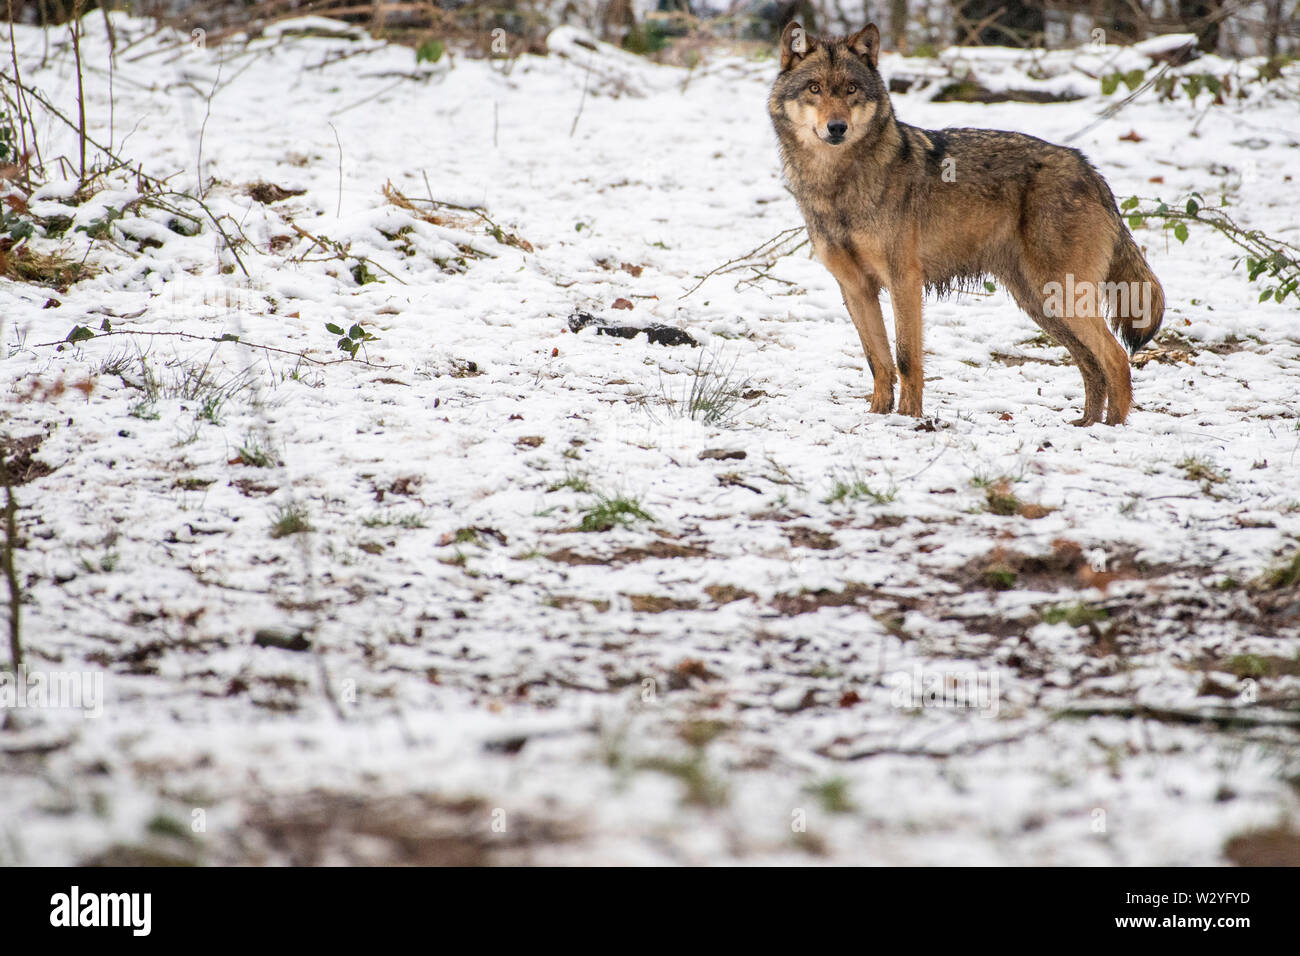 Wolf, Canis lupus - Stock Image